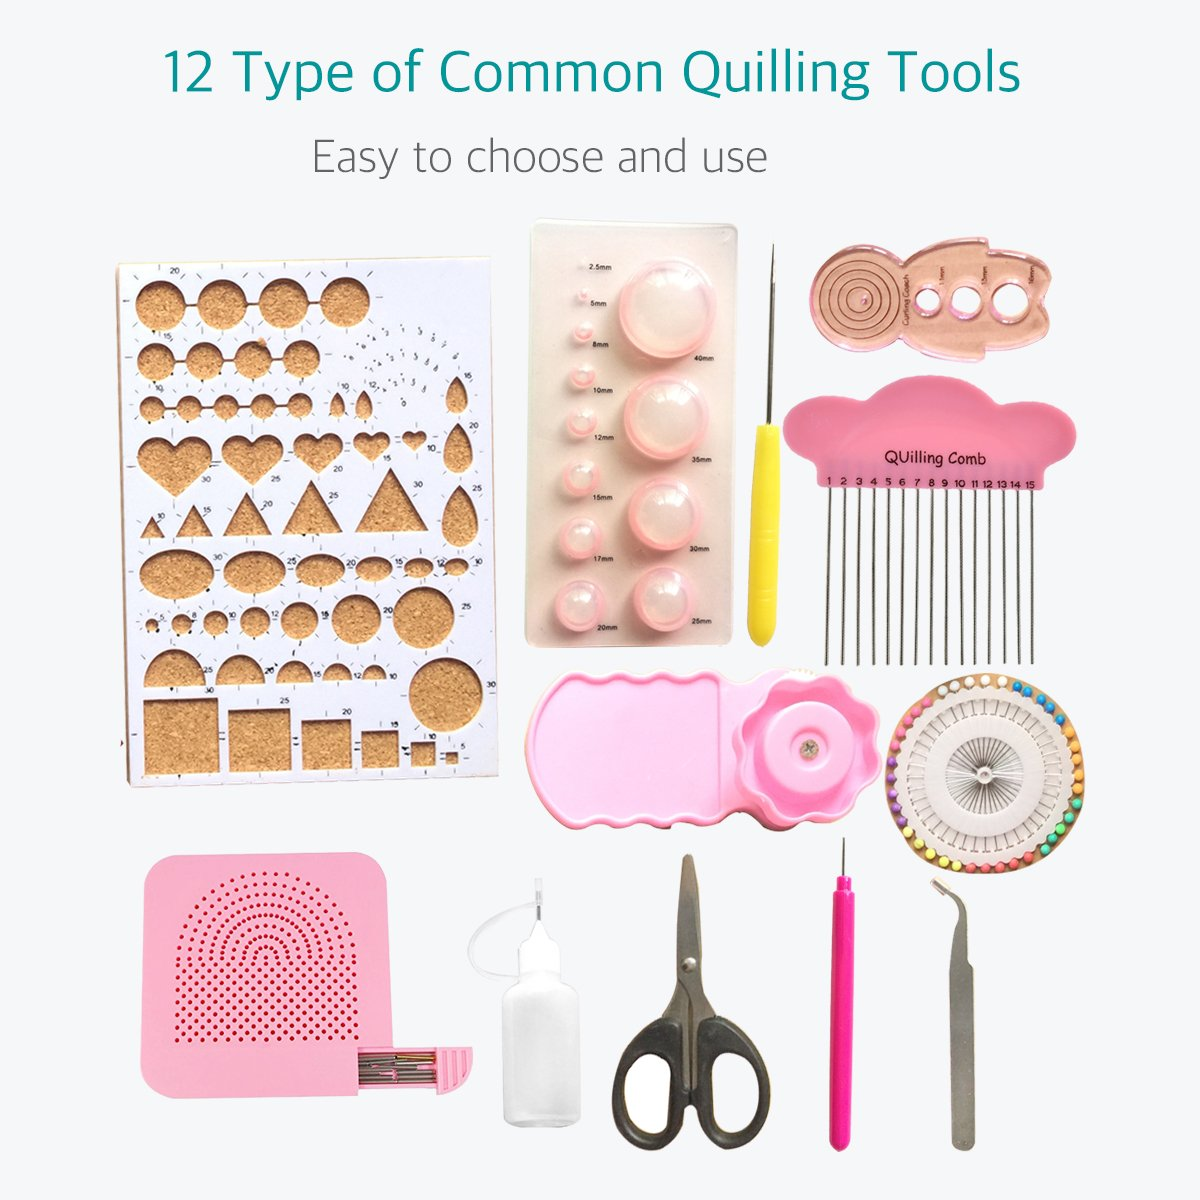 Lantee Quilling Supplies - 20 Sets of Quilling Paper Kits Include 8 Pack of 3mm 960 Quilling Paper Strips and 12 Quilling Tools by Lantee (Image #2)